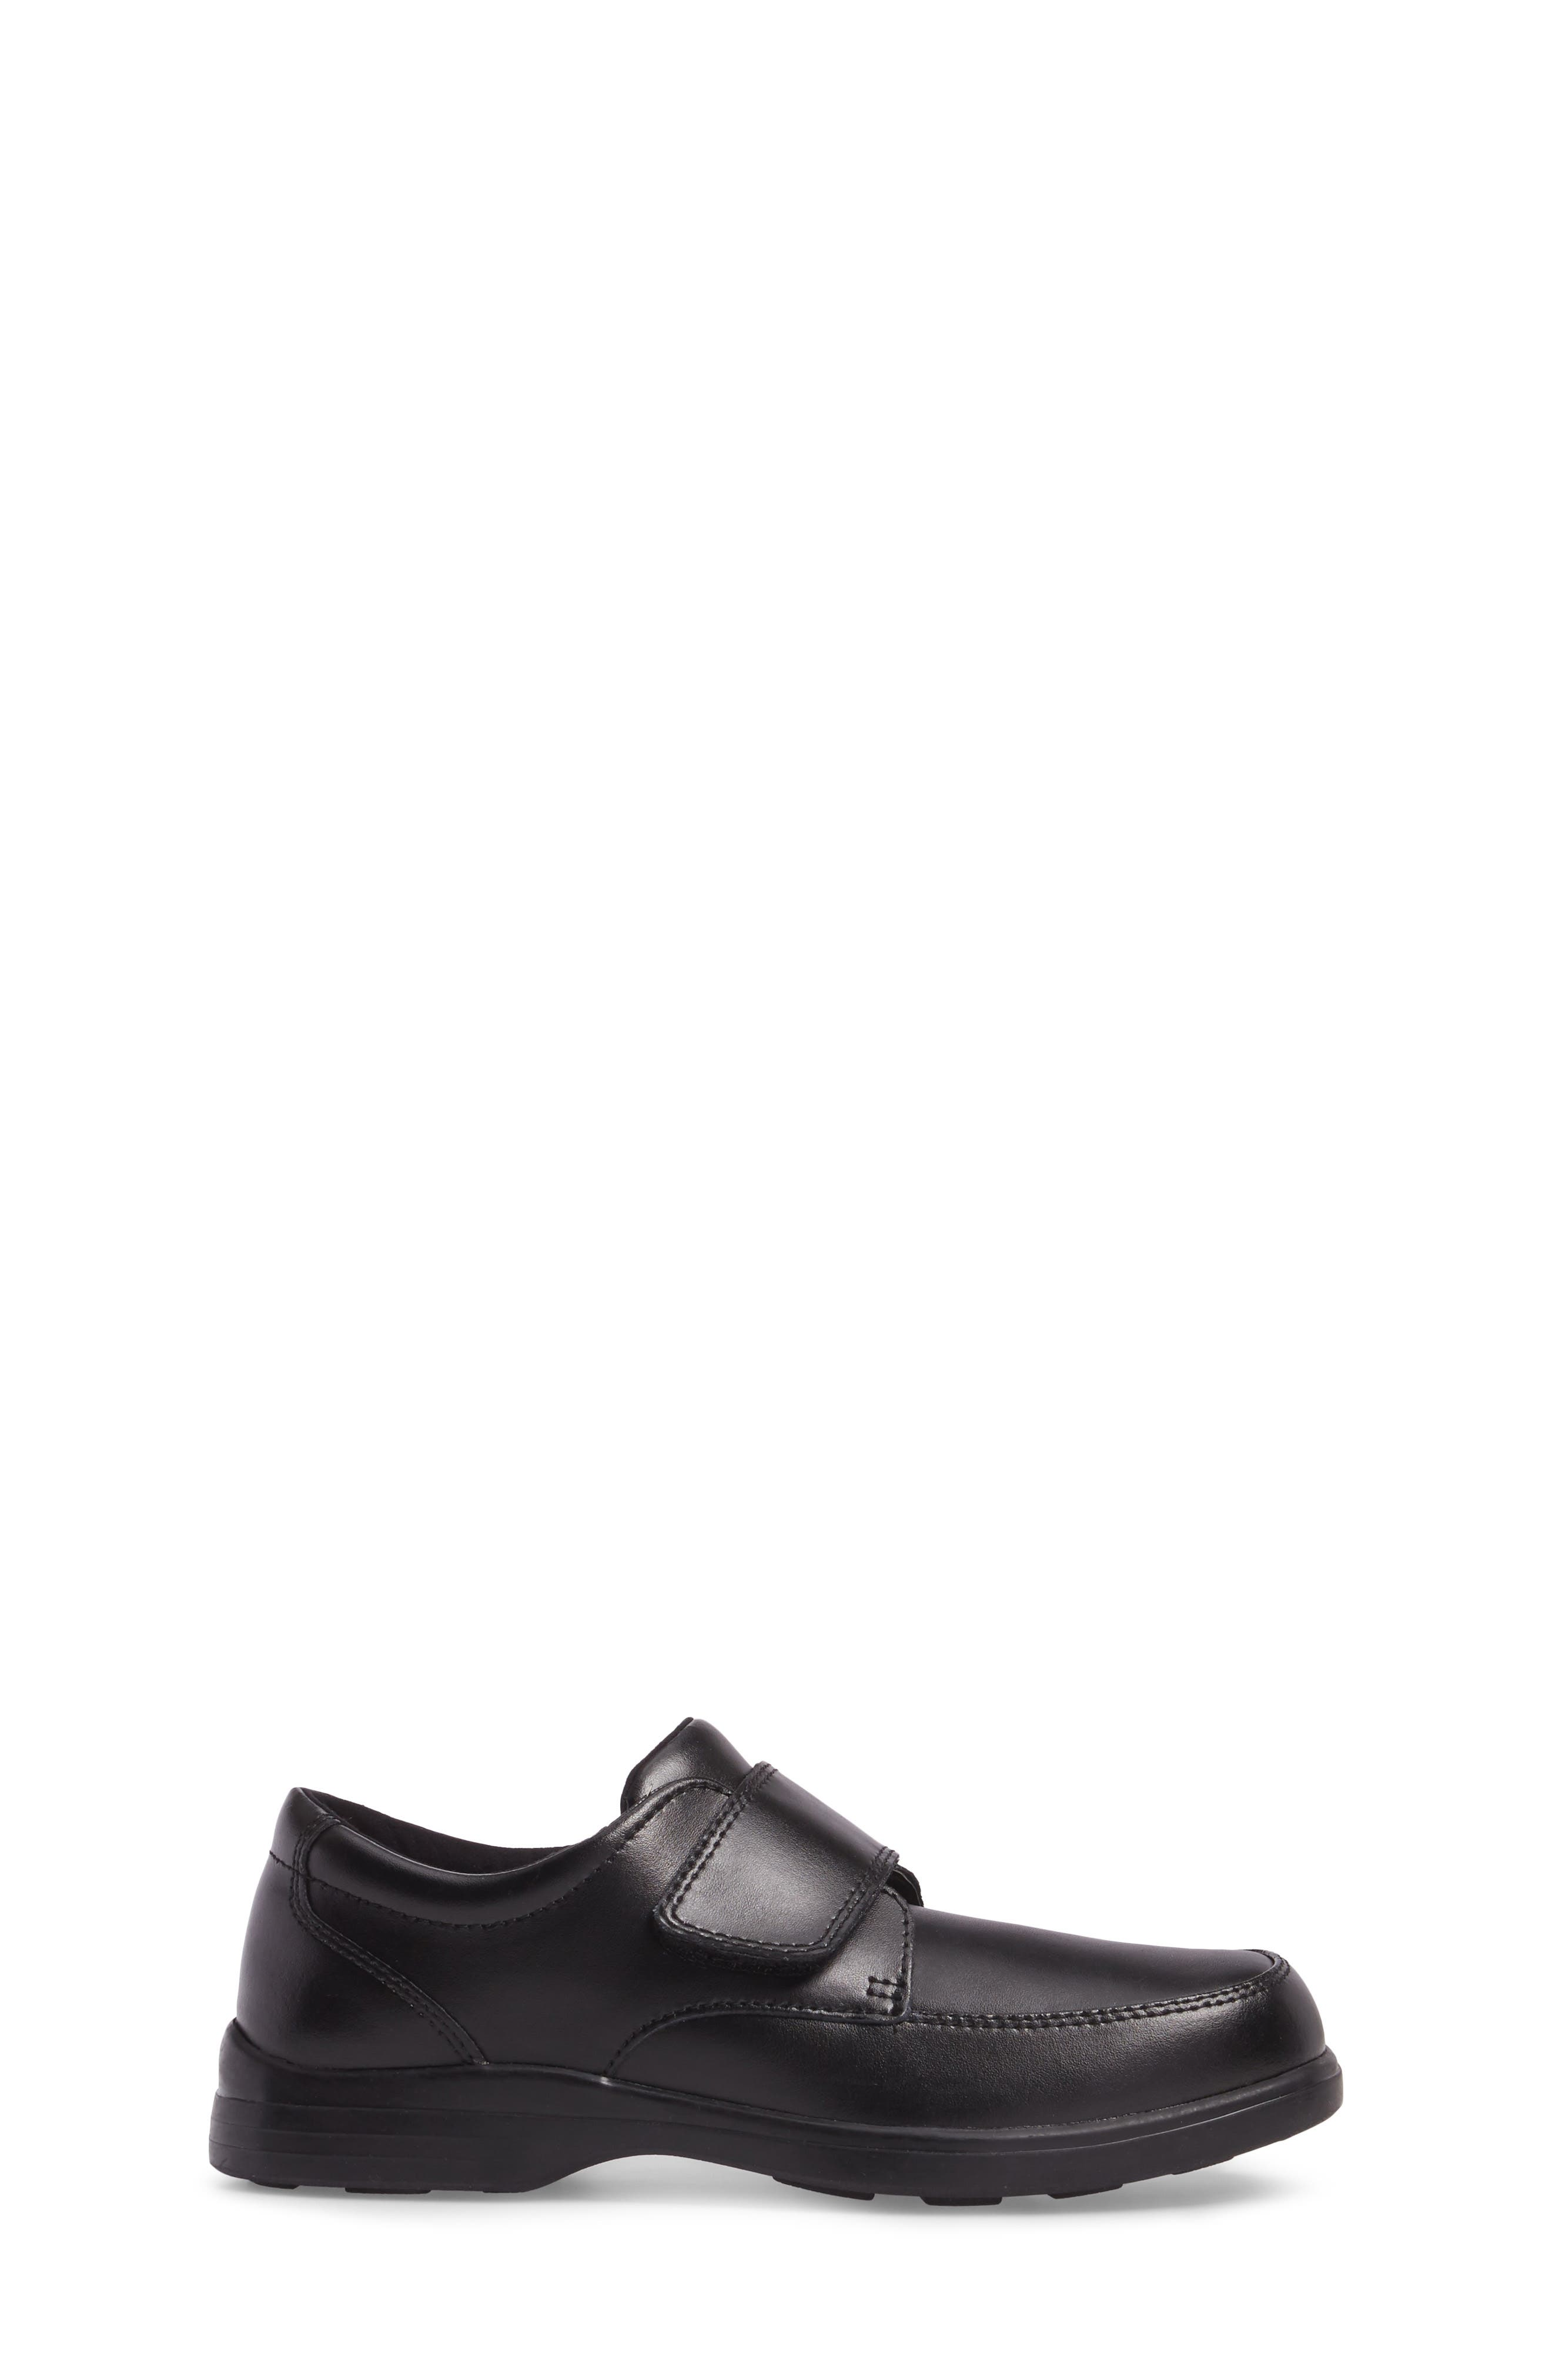 Hush Puppies Gavin Front Strap Dress Shoe,                             Alternate thumbnail 3, color,                             BLACK LEATHER